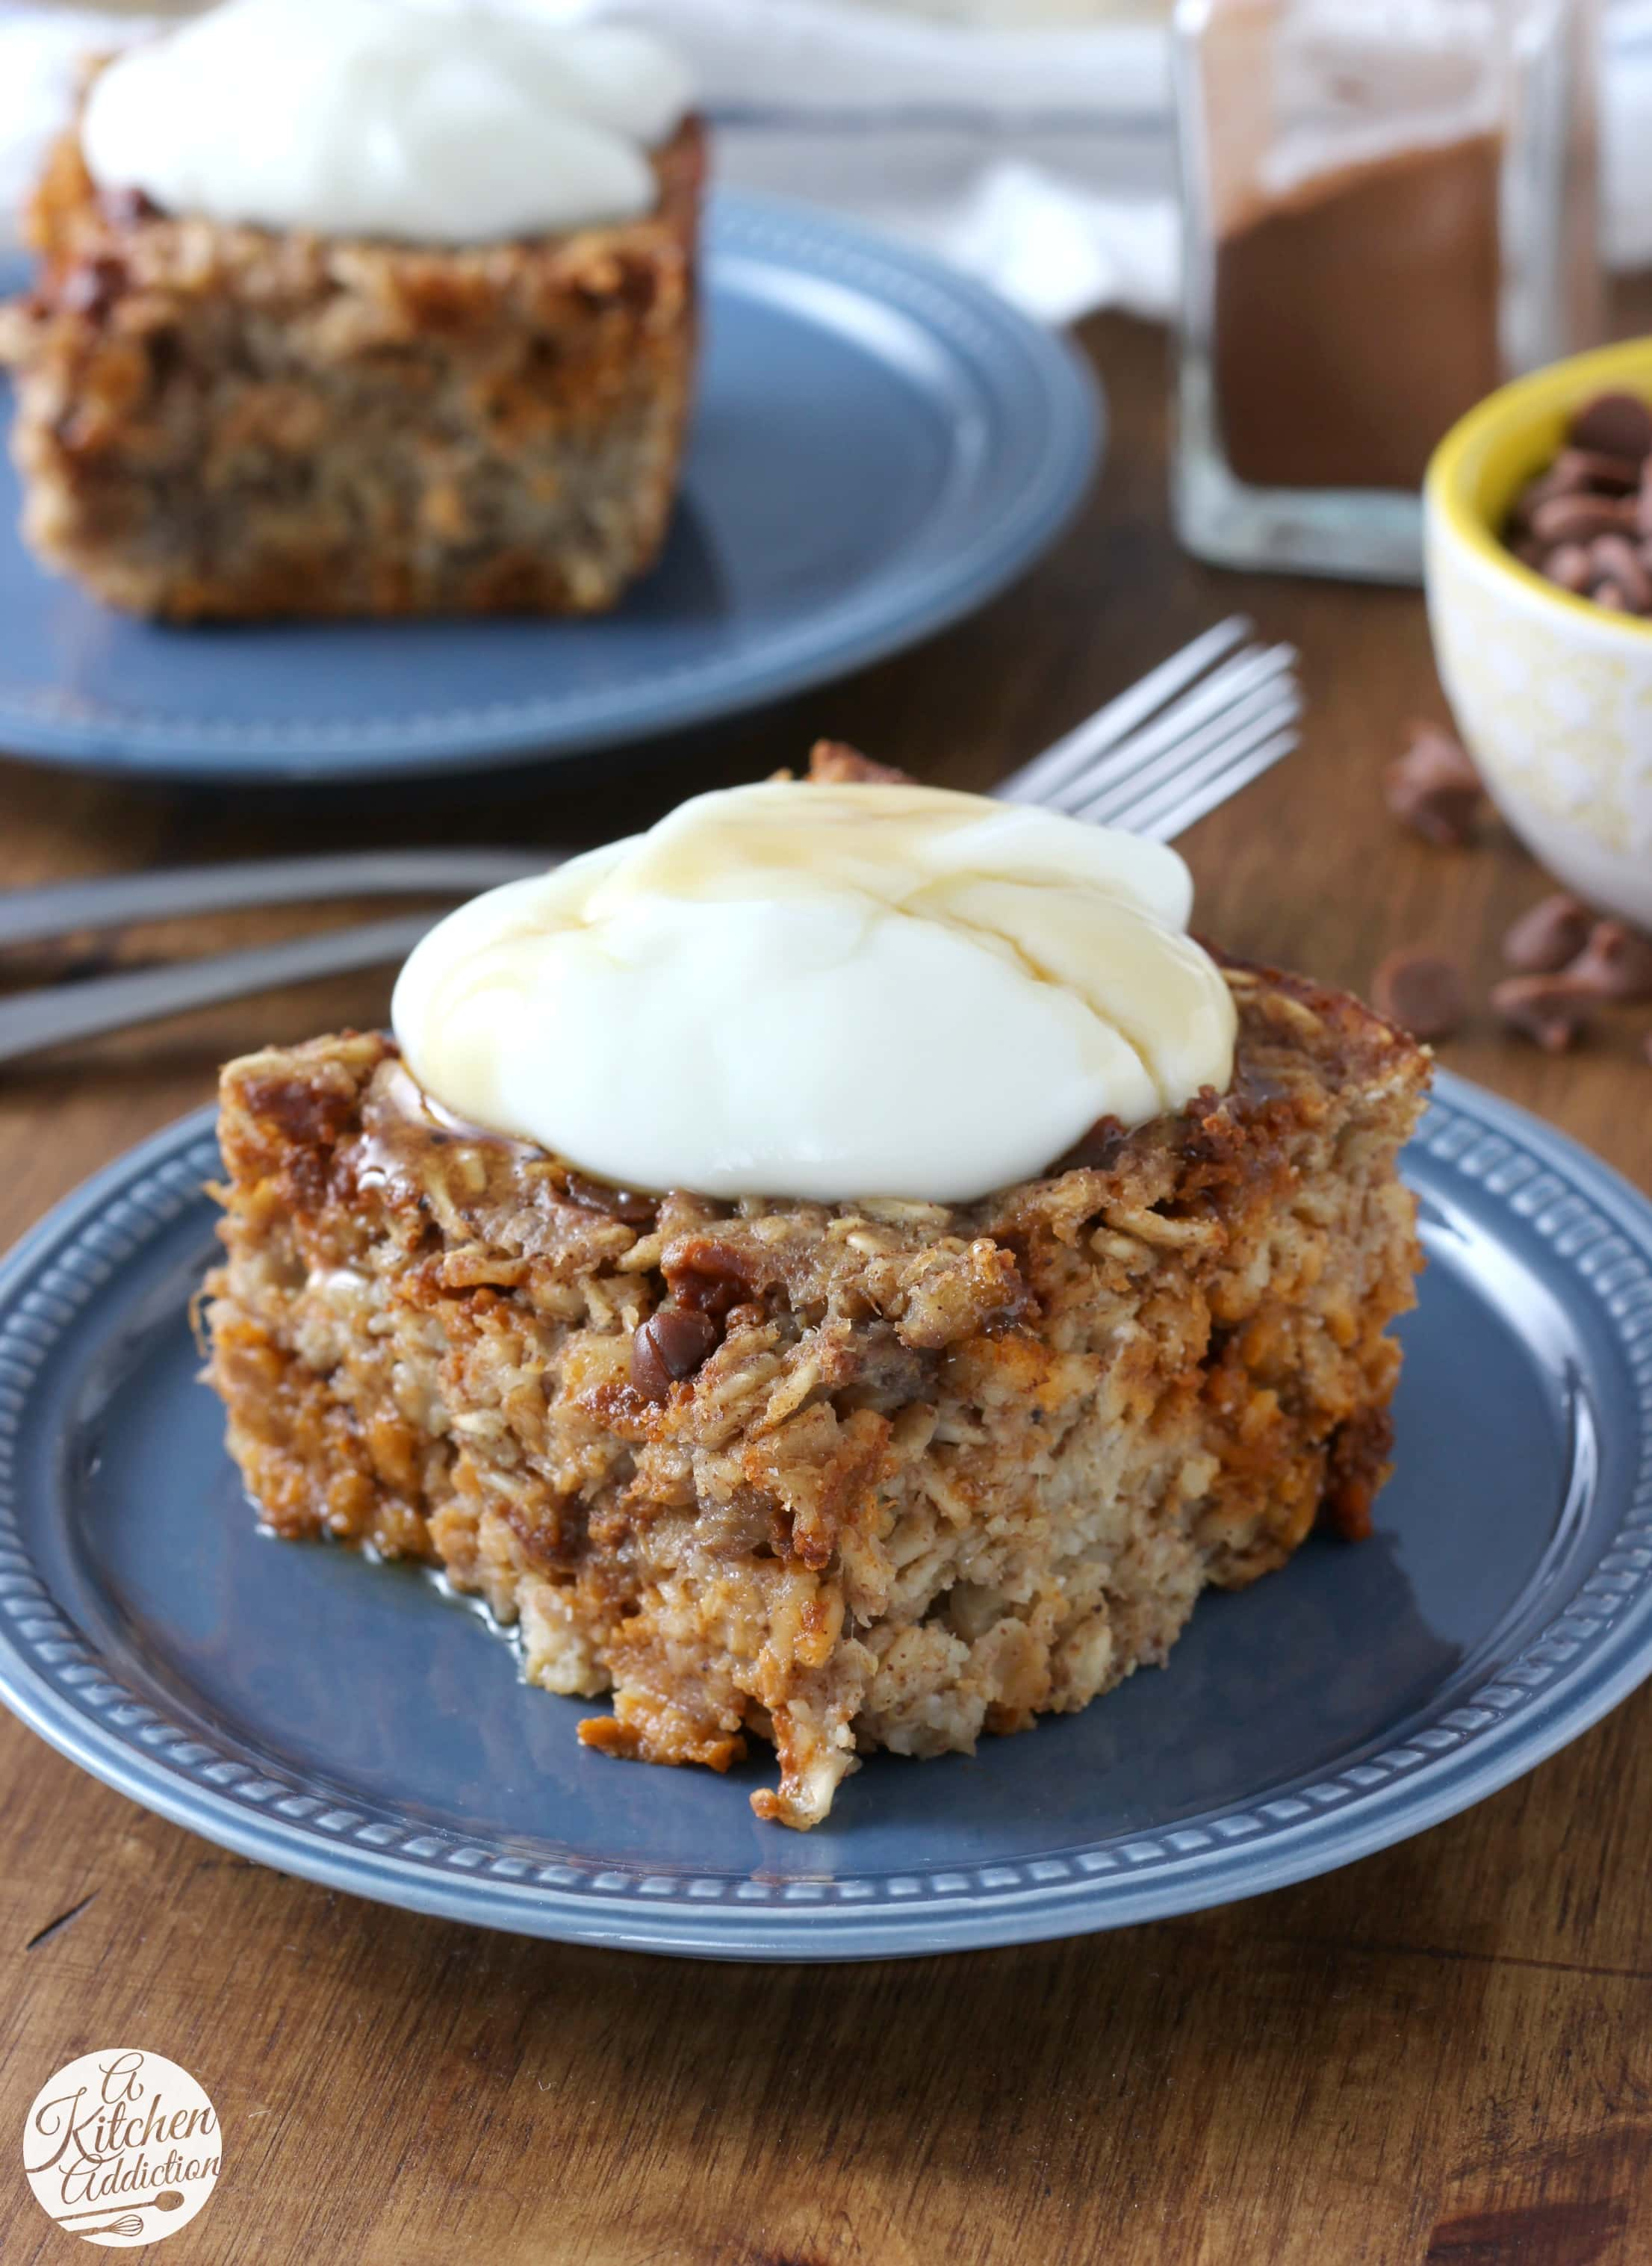 Cinnamon Chip Banana Bread Baked Oatmeal that can be made the night before! Recipe from A Kitchen Addiction